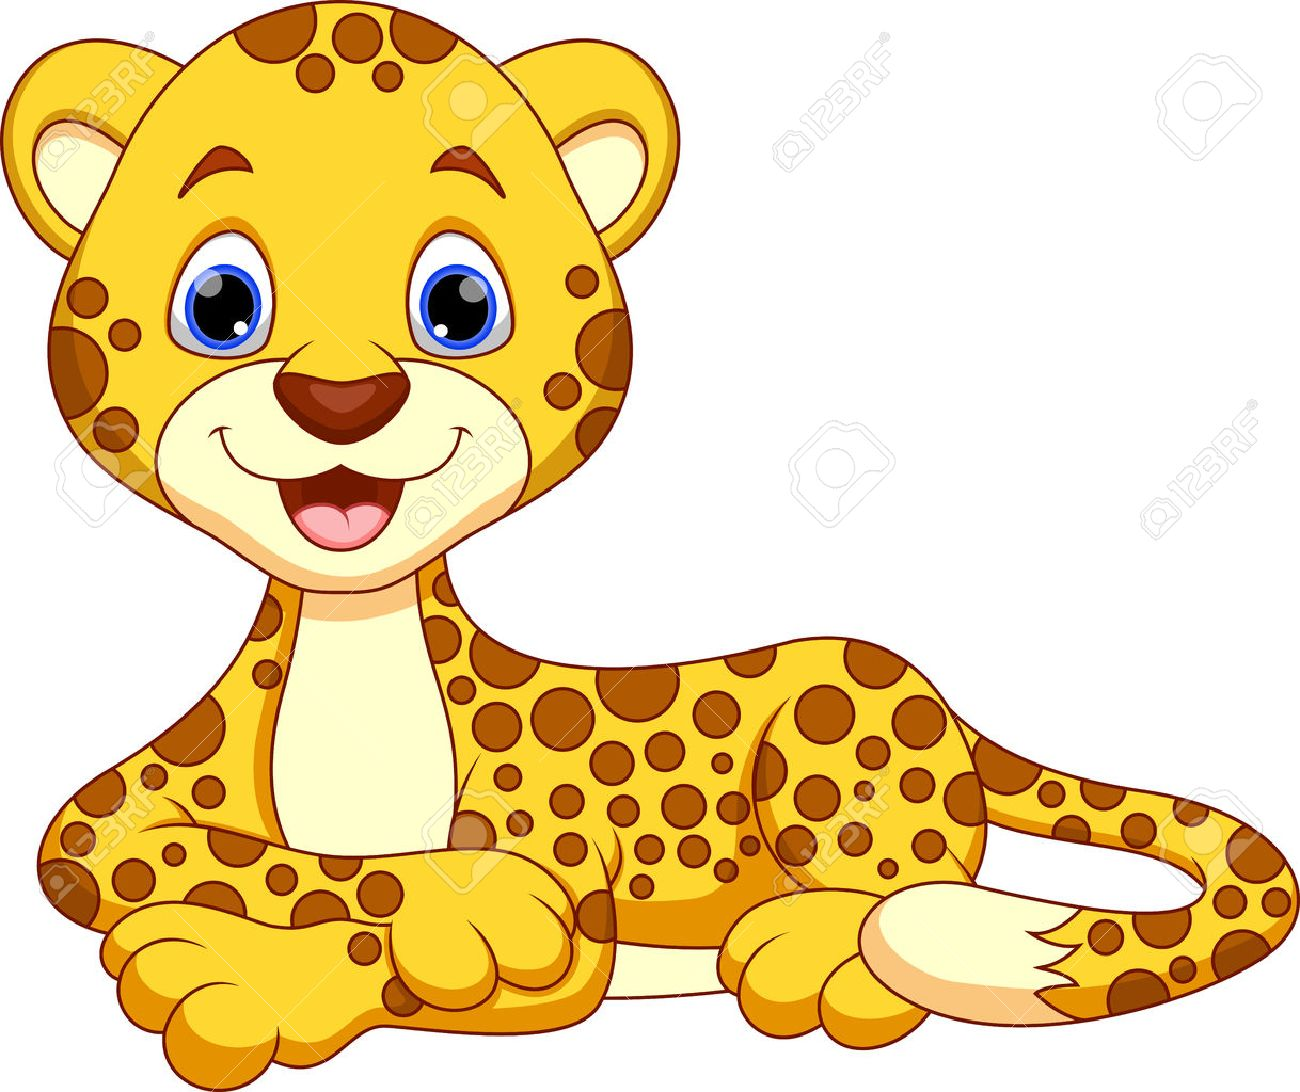 Cute cheetah cartoon.